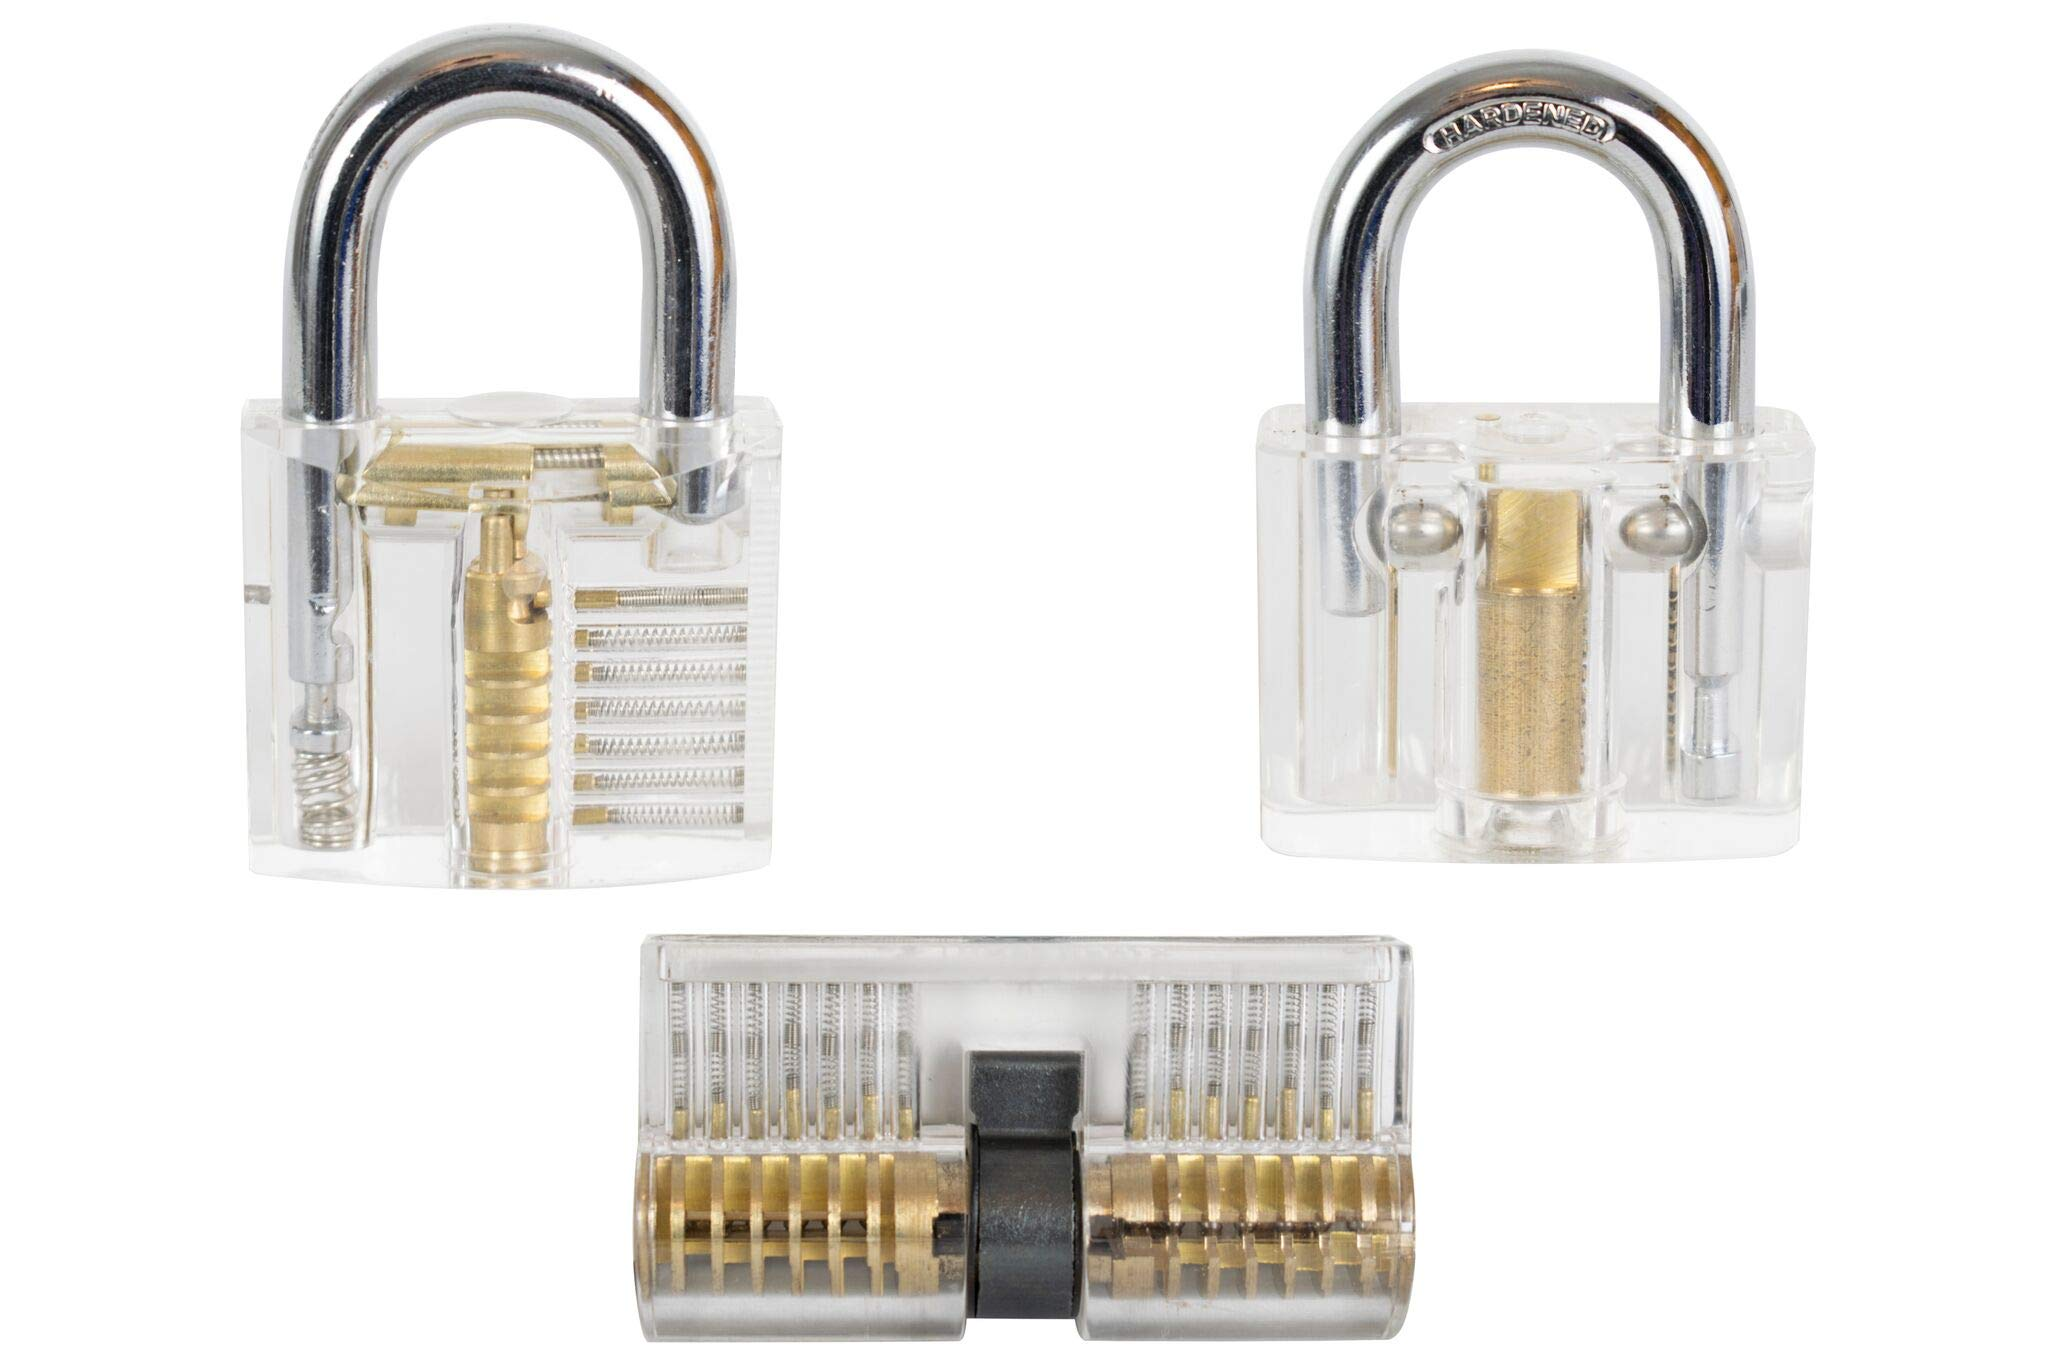 Title: Hoss Henly | 3 Clear Cutaway Locks | Instructional Content Included | Puzzle Enthusiasts and Curious Individuals by Hoss Henly (Image #2)